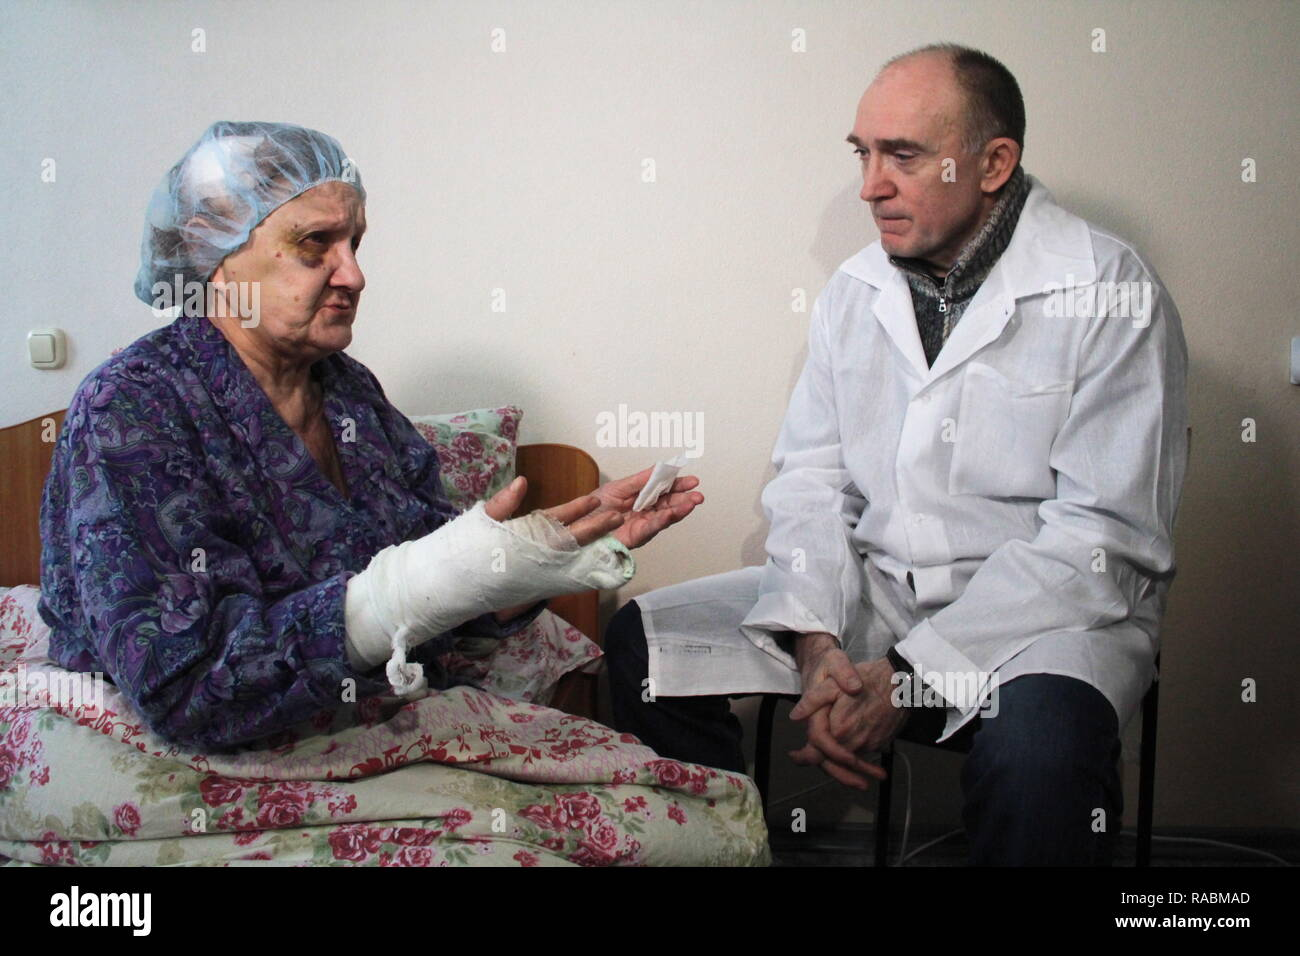 Magnitogorsk, Russia. 03rd Jan, 2019. MAGNITOGORSK, RUSSIA - JANUARY 3, 2019: Chelyabinsk Region Governor Boris Dubrovsky (R) visits a Magnitogorsk hospital to see residents of an apartment building at 164 Prospekt Karla Marksa Street partially destroyed by a domestic gas explosion on December 31, 2018, killing 37 and leaving four missing. Ilya Moskovets/TASS Credit: ITAR-TASS News Agency/Alamy Live News - Stock Image